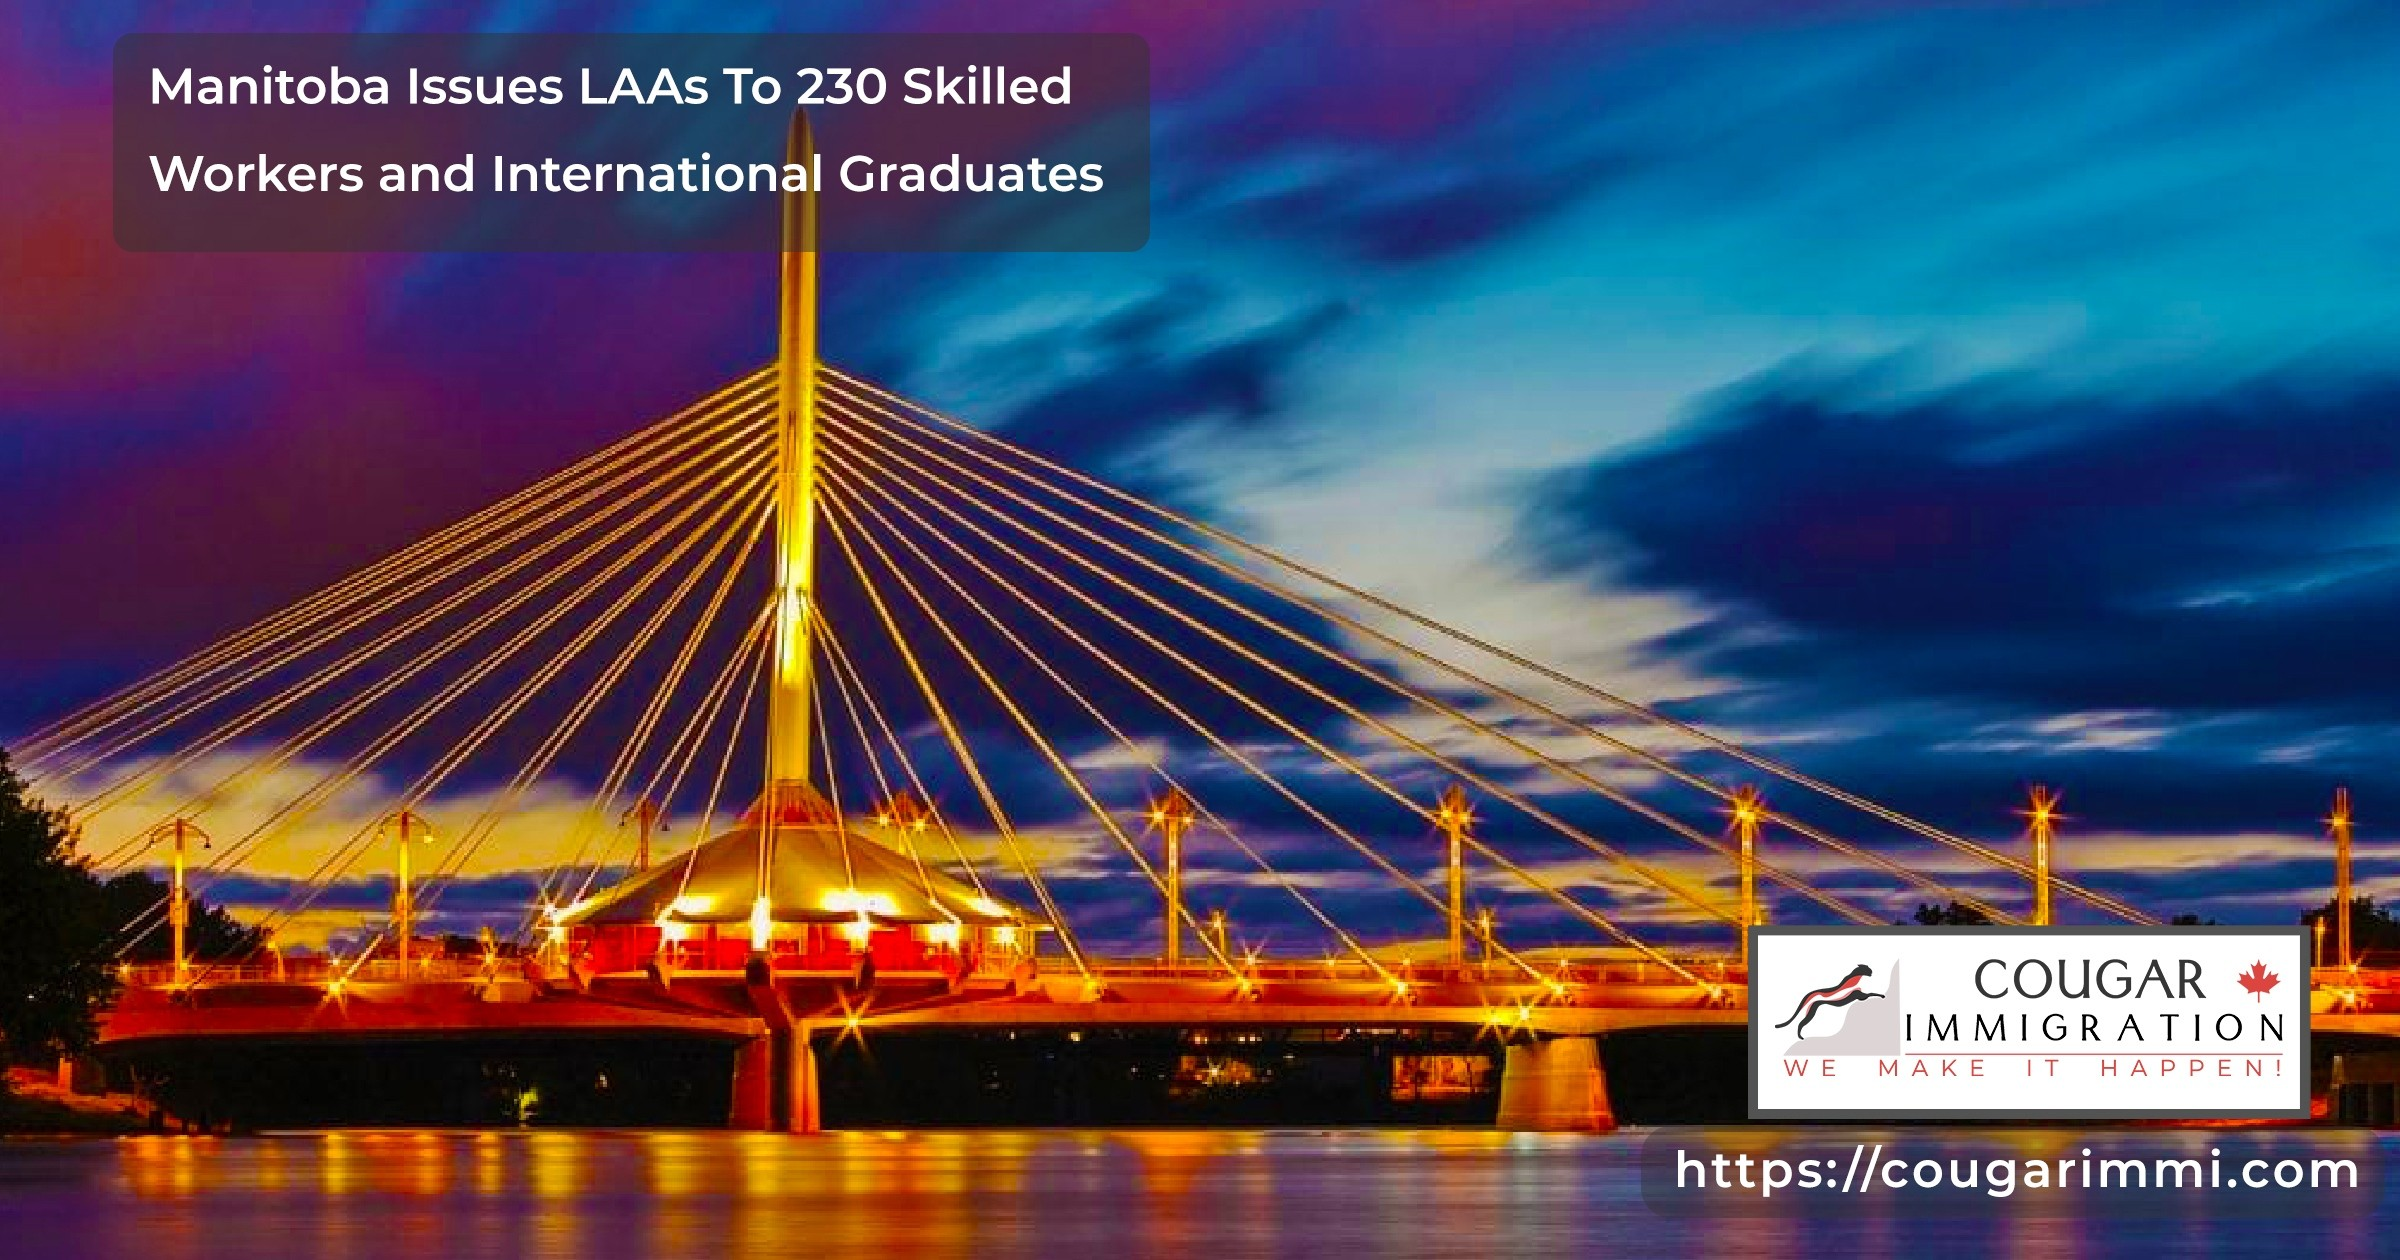 Manitoba Issues LAAs To 230 Skilled Workers and International Graduates thumbnail